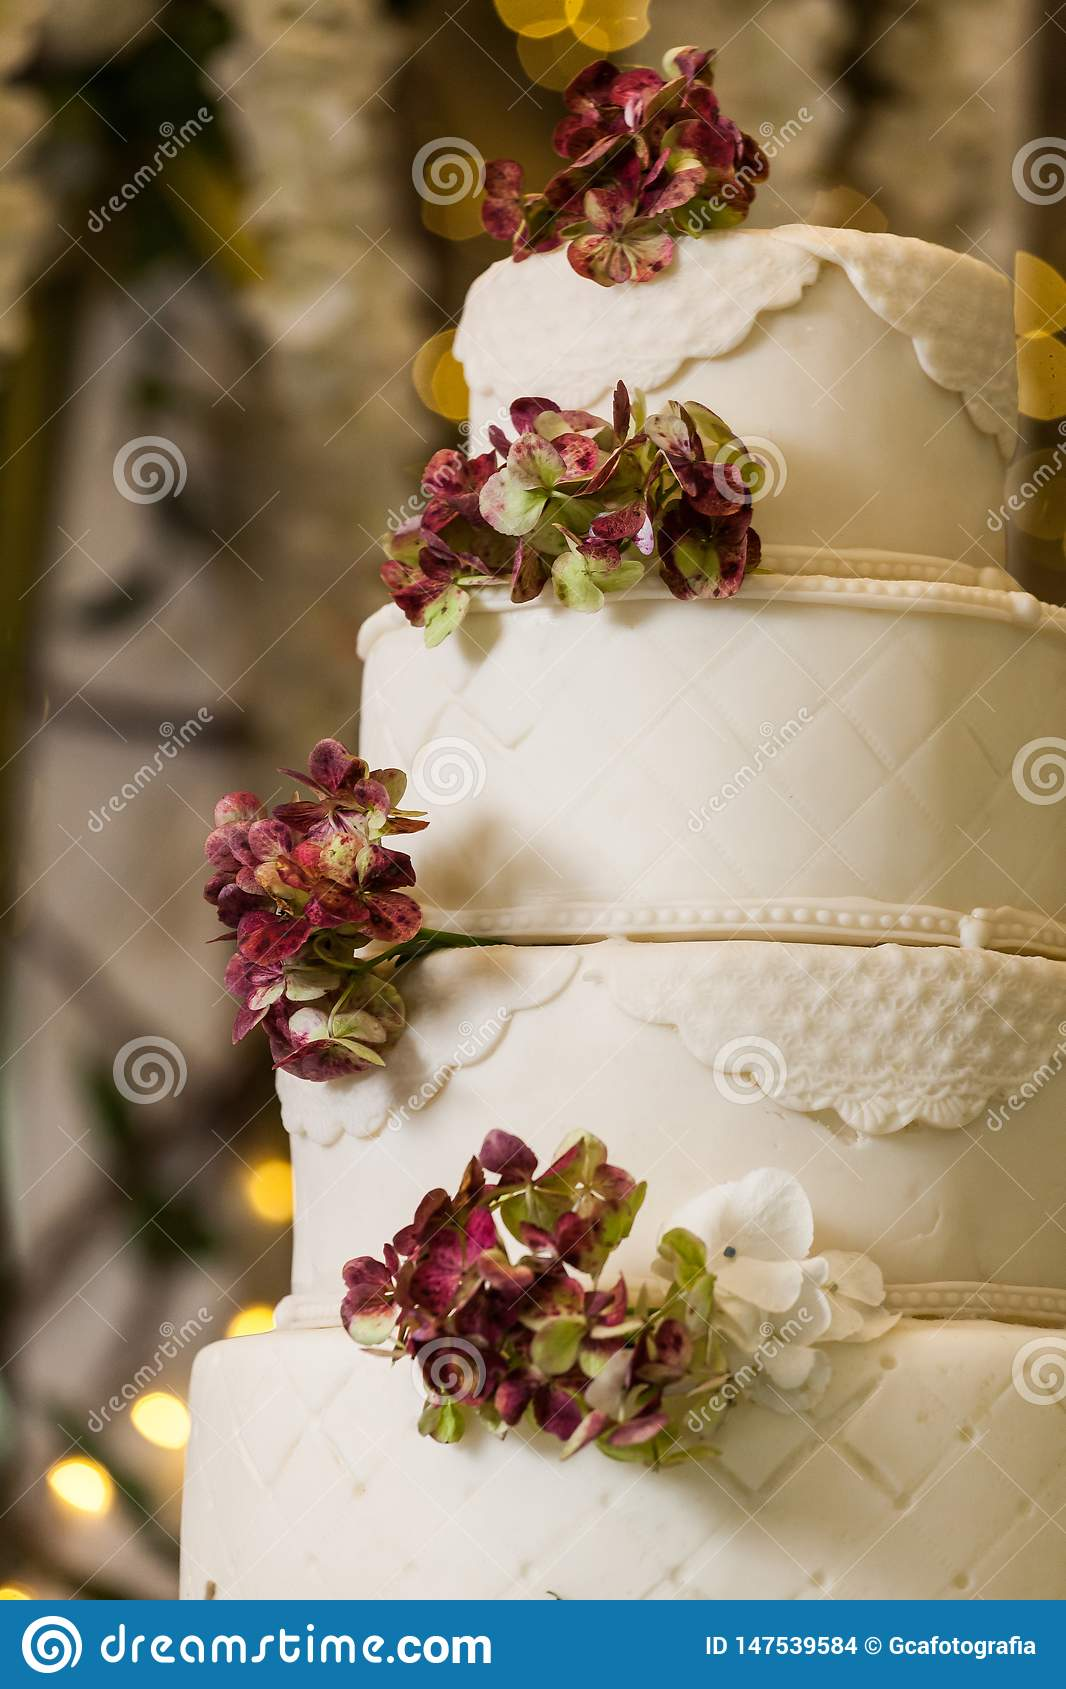 Tasty wedding cake, decorated with flowers